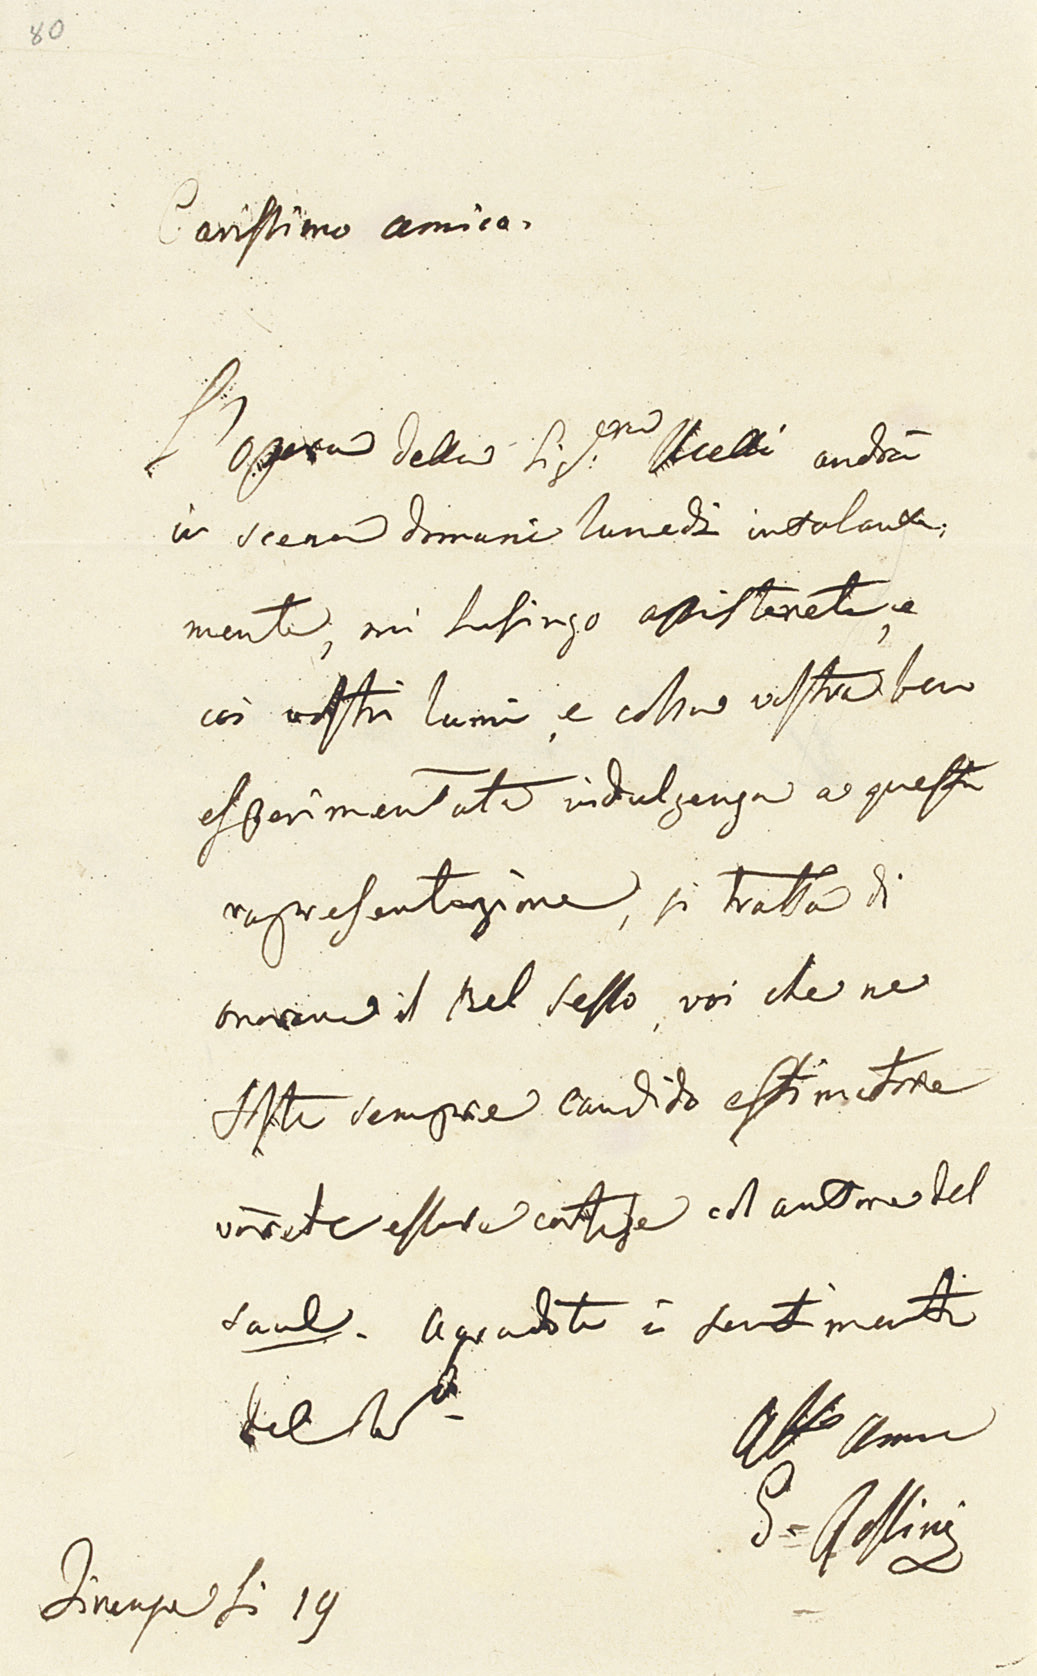 ROSSINI, Gioachino (1792-1868). Autograph letter signed ('G. Rossini') to a friend [Count ?Rosponi], Florence, incompletely dated, informing the recipient of a forthcoming performance of an opera by [Carolina]  U[c]celli and urging him to attend 'coi vostri lumi, e colla vostra ben esperimentata indulgenza', not least as a homage to the fairer sex and to the composer of Saul ('si tratta di onorare il Bel Sesso, voi che ne foste sempre candido estimatore vorreste essere cortese col autore del Saul'), one page, 8vo, integral address leaf. Provenance: Sotheby's sale, 18 November 1988, lot 436.